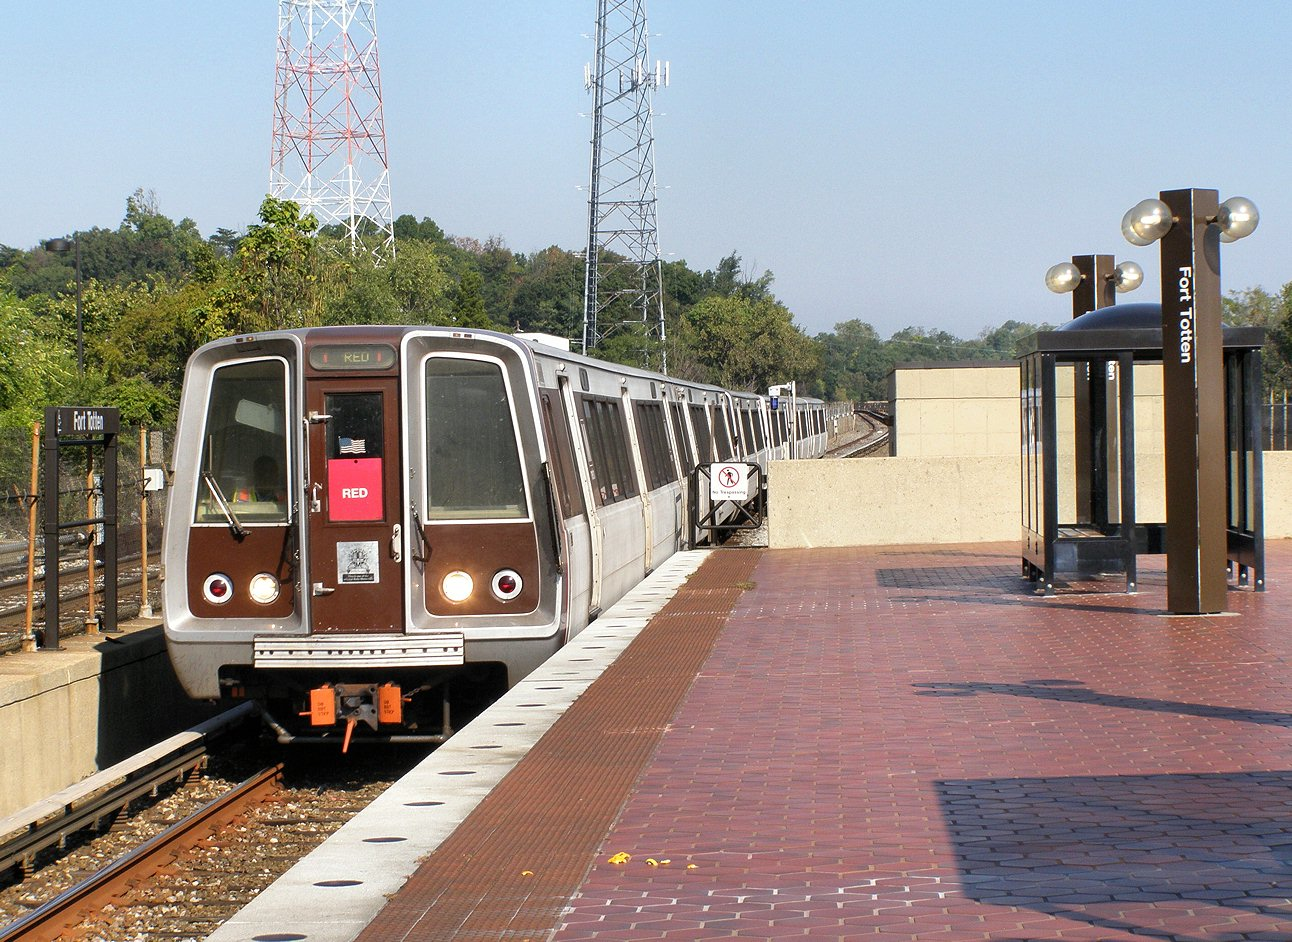 Transit benefits increase sooner for Region 9 than DC employees.